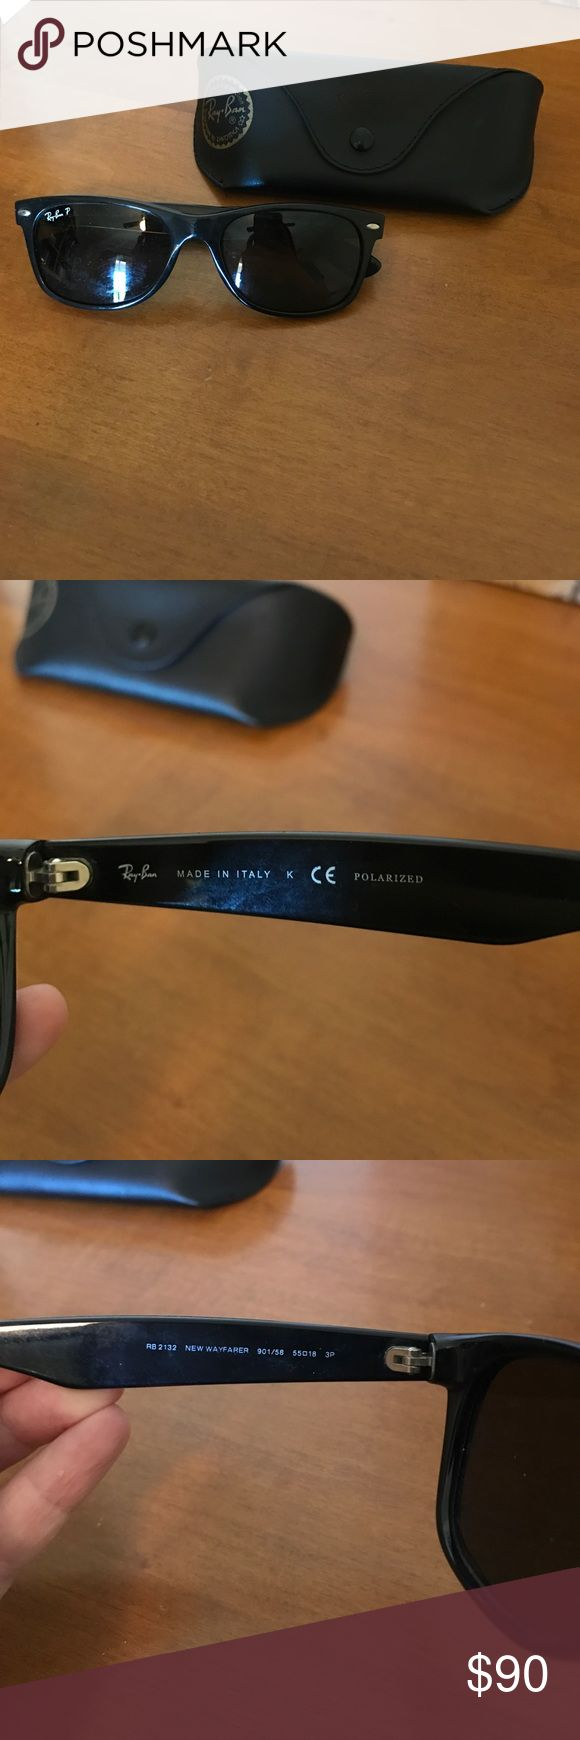 Polarized Ray Ban Wayfarers RB2132 Black polarized Ray Ban wayfarer sunglasses. Good condition and they come with the case. Worked great for me when I was a lifeguard 😎 but I don't wear them anymore. Ray-Ban Accessories Sunglasses